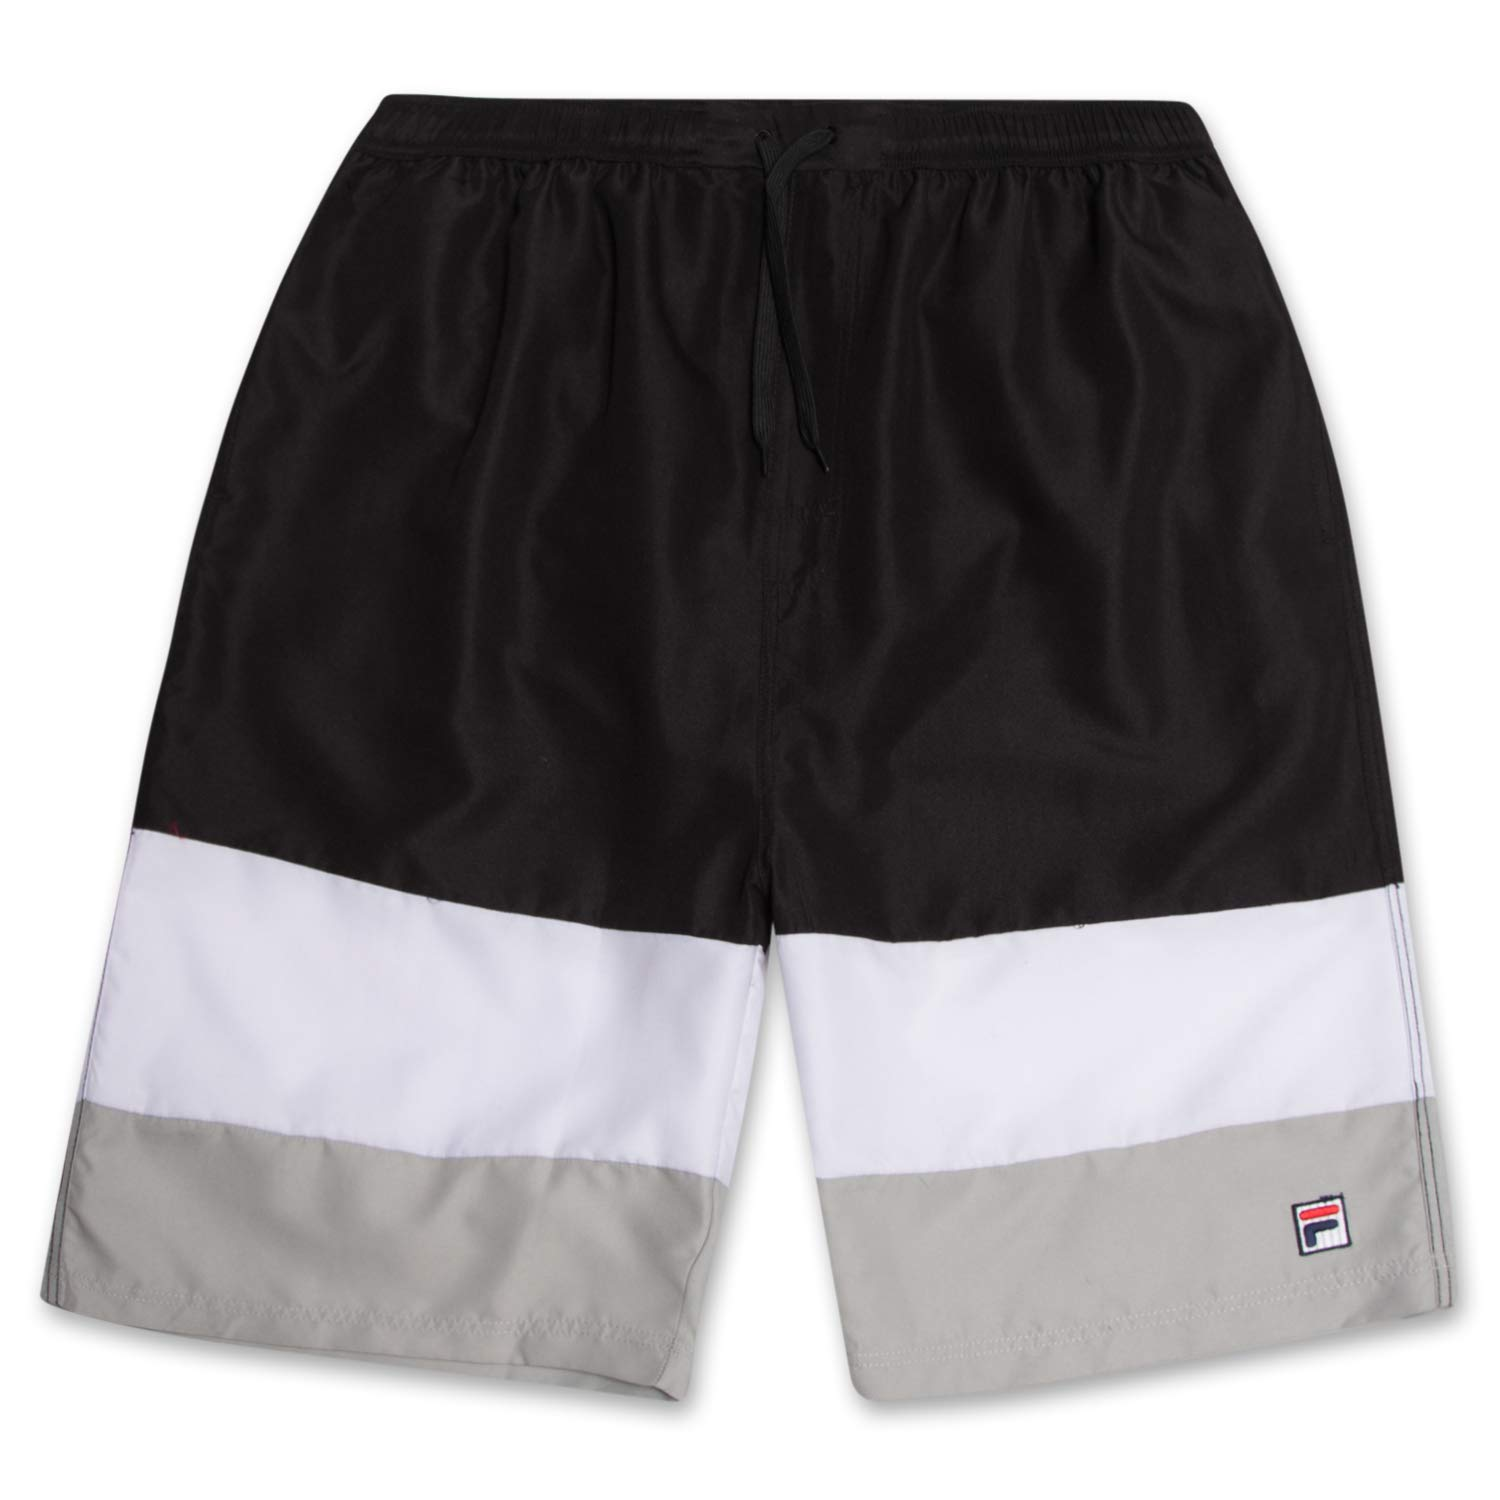 Fila Mens Big and Tall Color Block Long Swim Trunks Mesh Lined with Quick Dry Technology by Fila